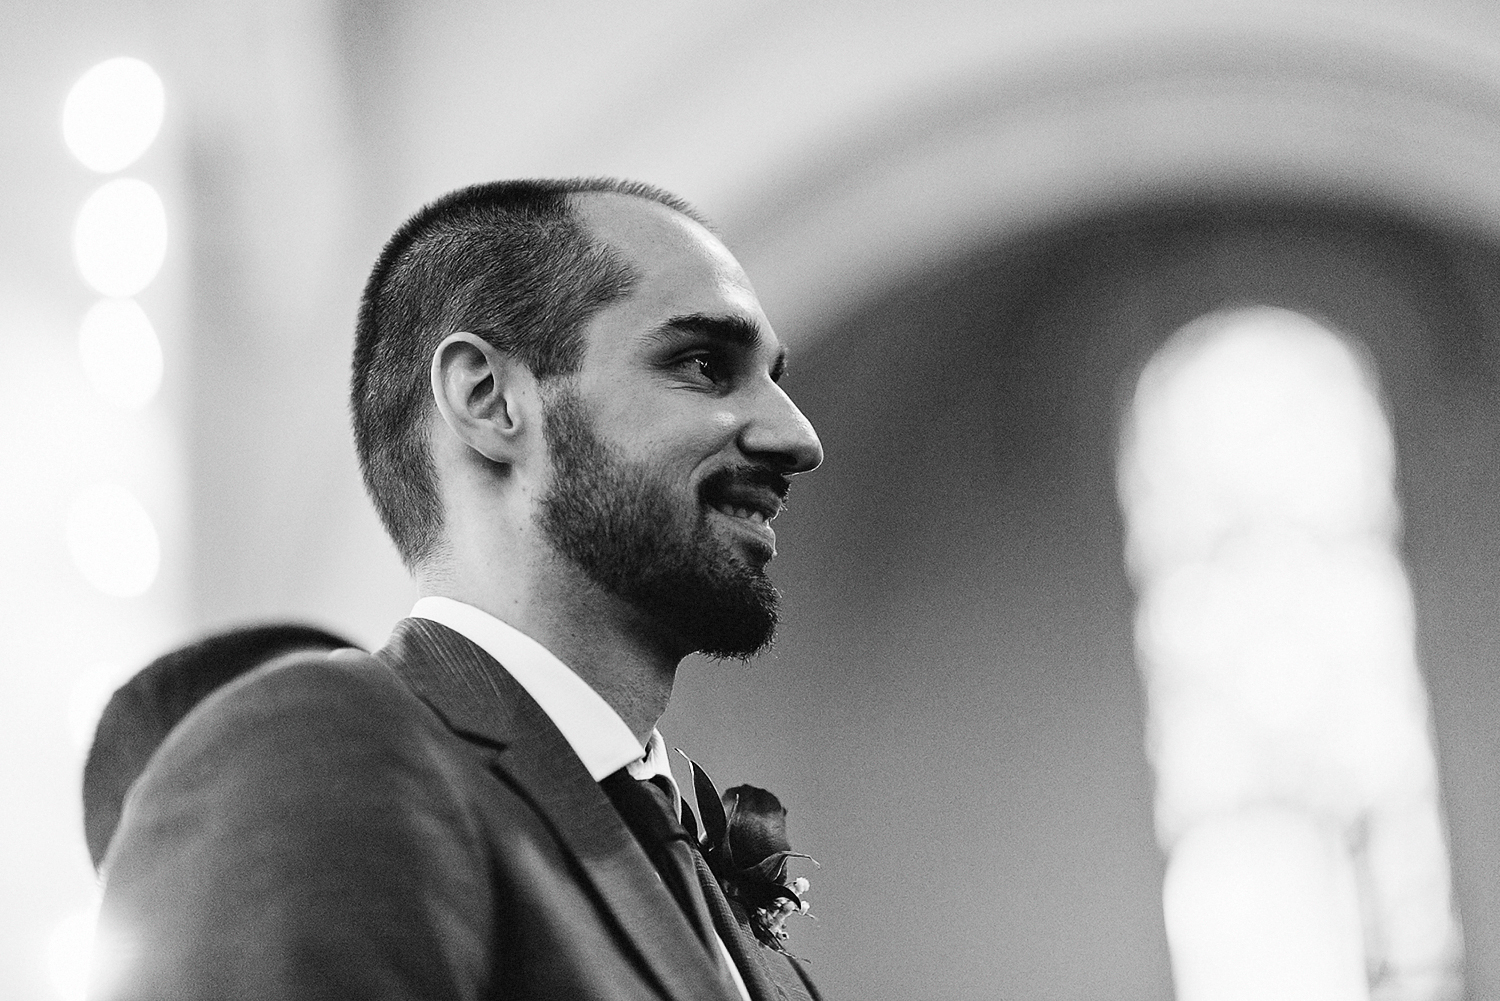 Toronto-Photojournalism-wedding-photographers-3B-Photography-Candid-Documentary-Film-Photography-Analog-Ontario-Hamilton-Port-Perry-Venue-temple-ceremony-sikh-pre-ceremony-traditions-Groom-seeing-bride-for-first-time.jpg